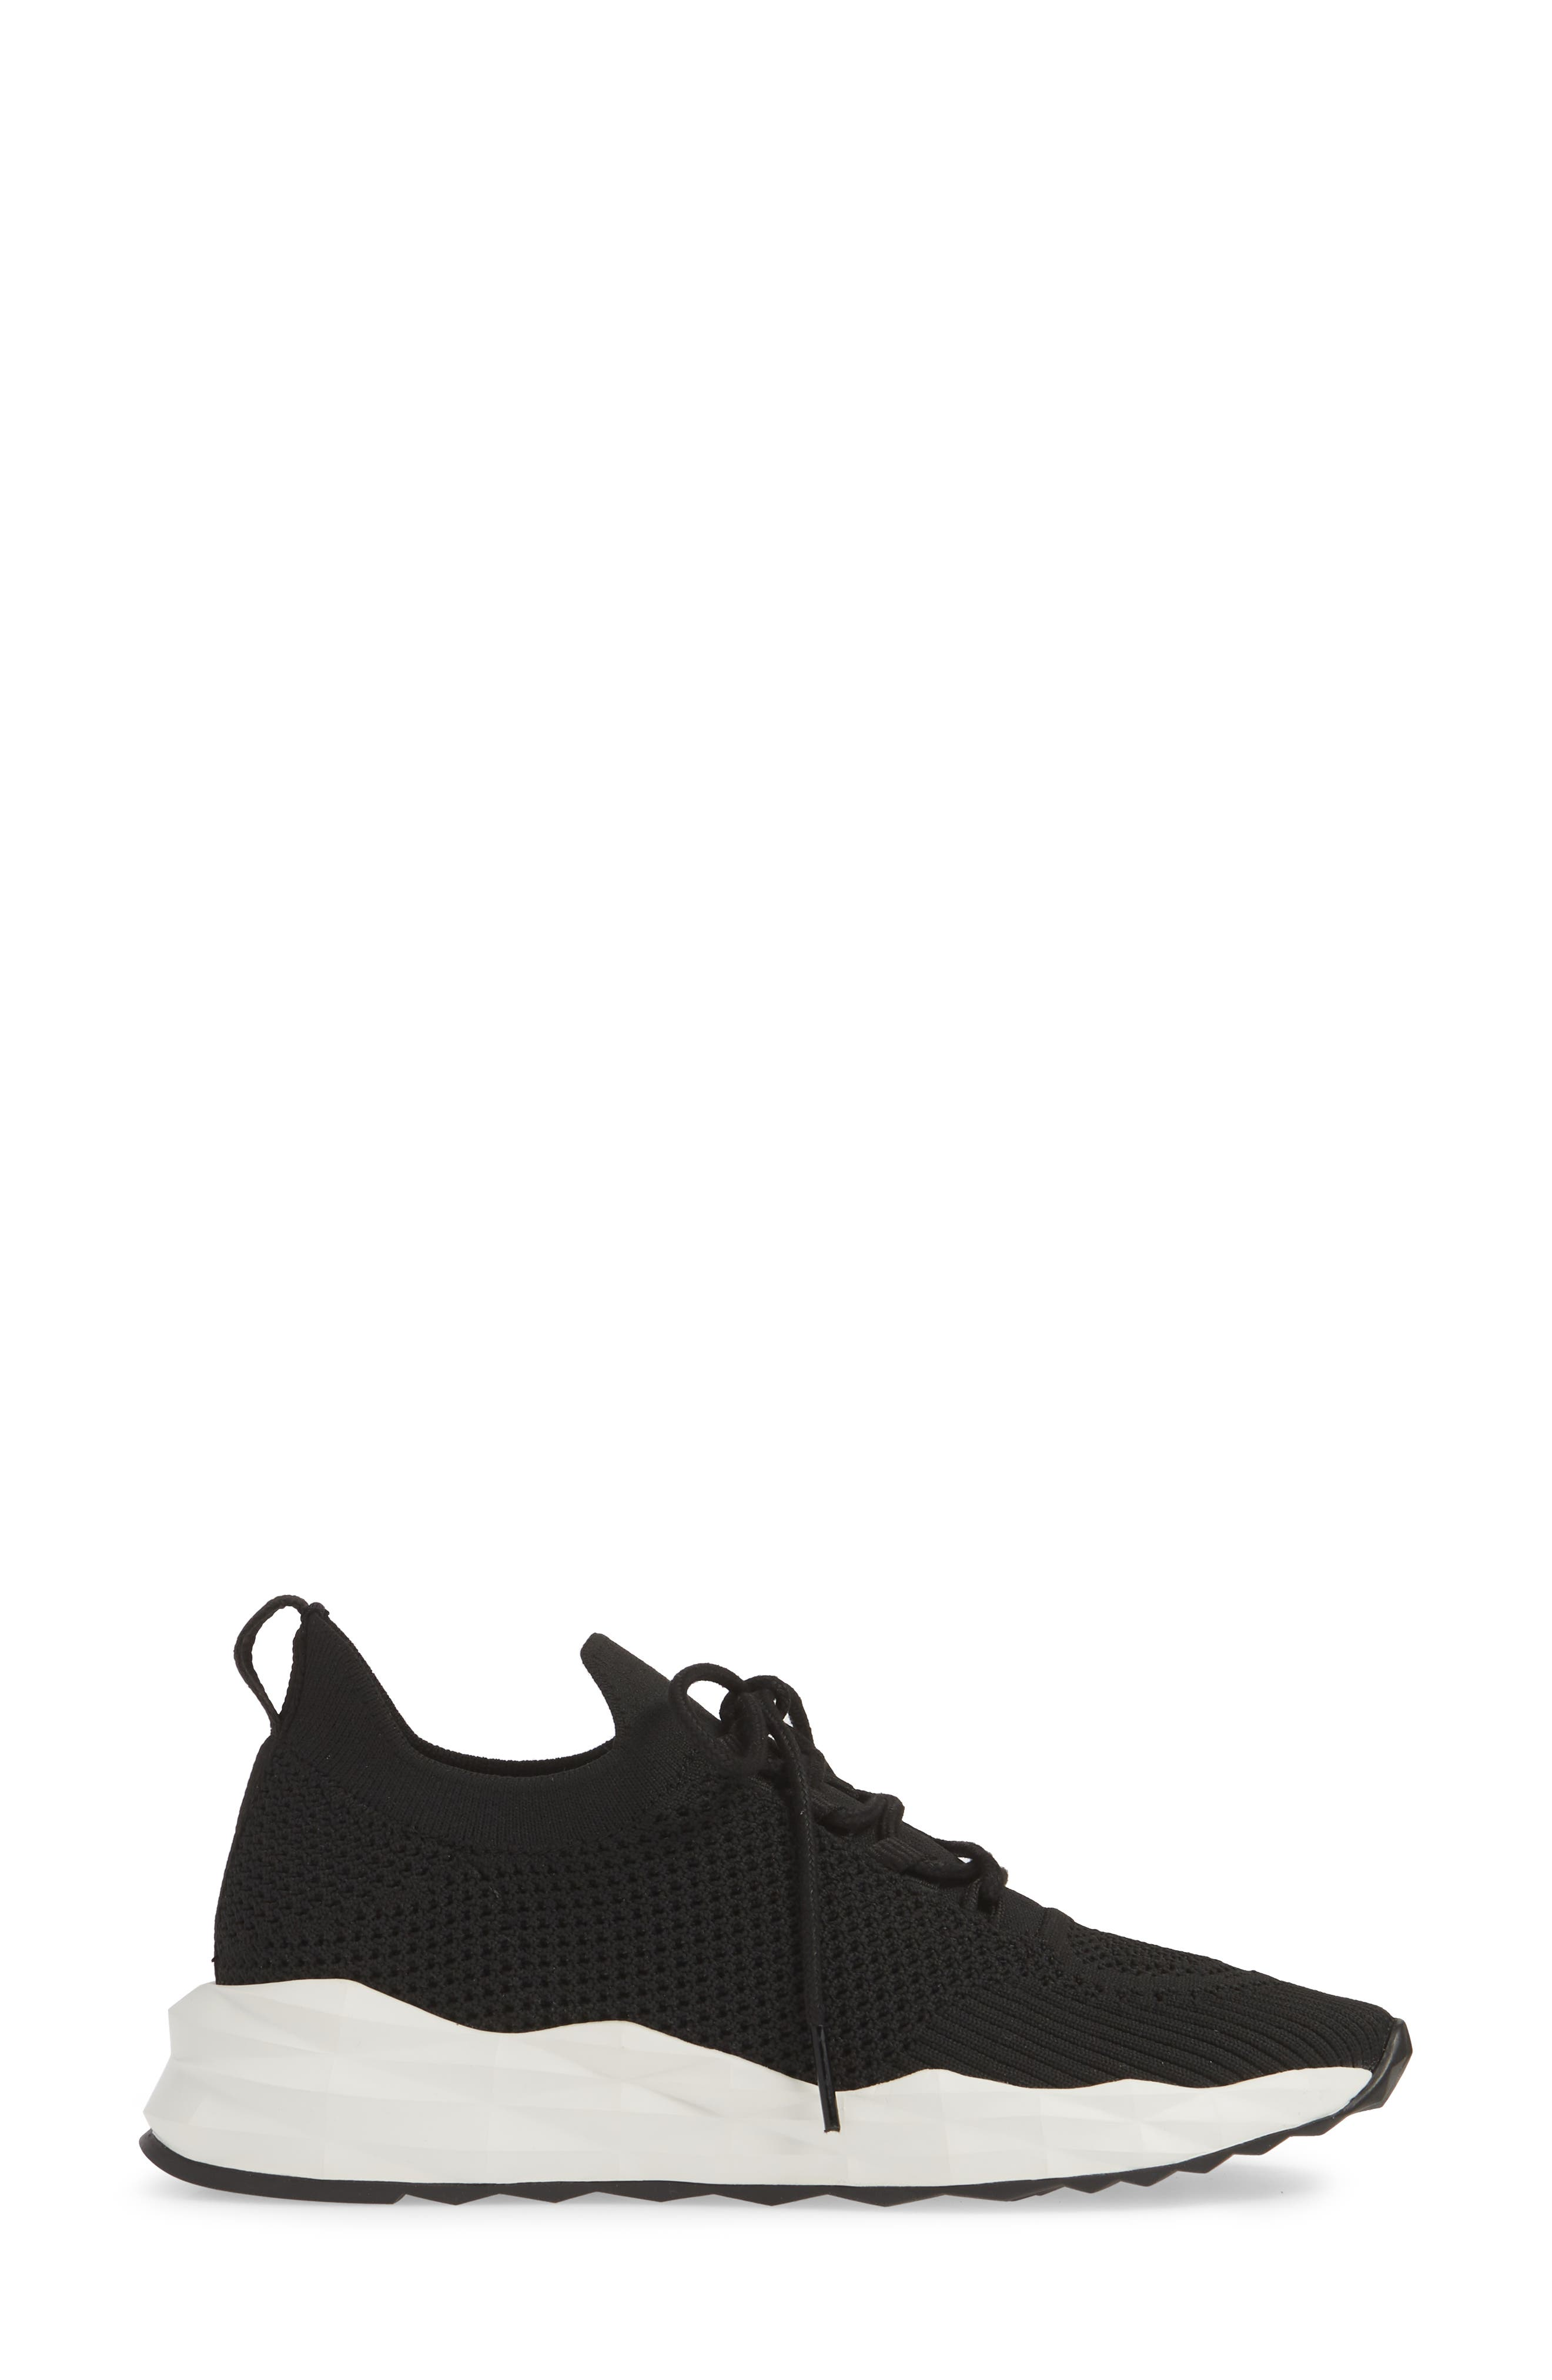 ASH, Knit Skate Sneaker, Alternate thumbnail 3, color, BLACK/ BLACK